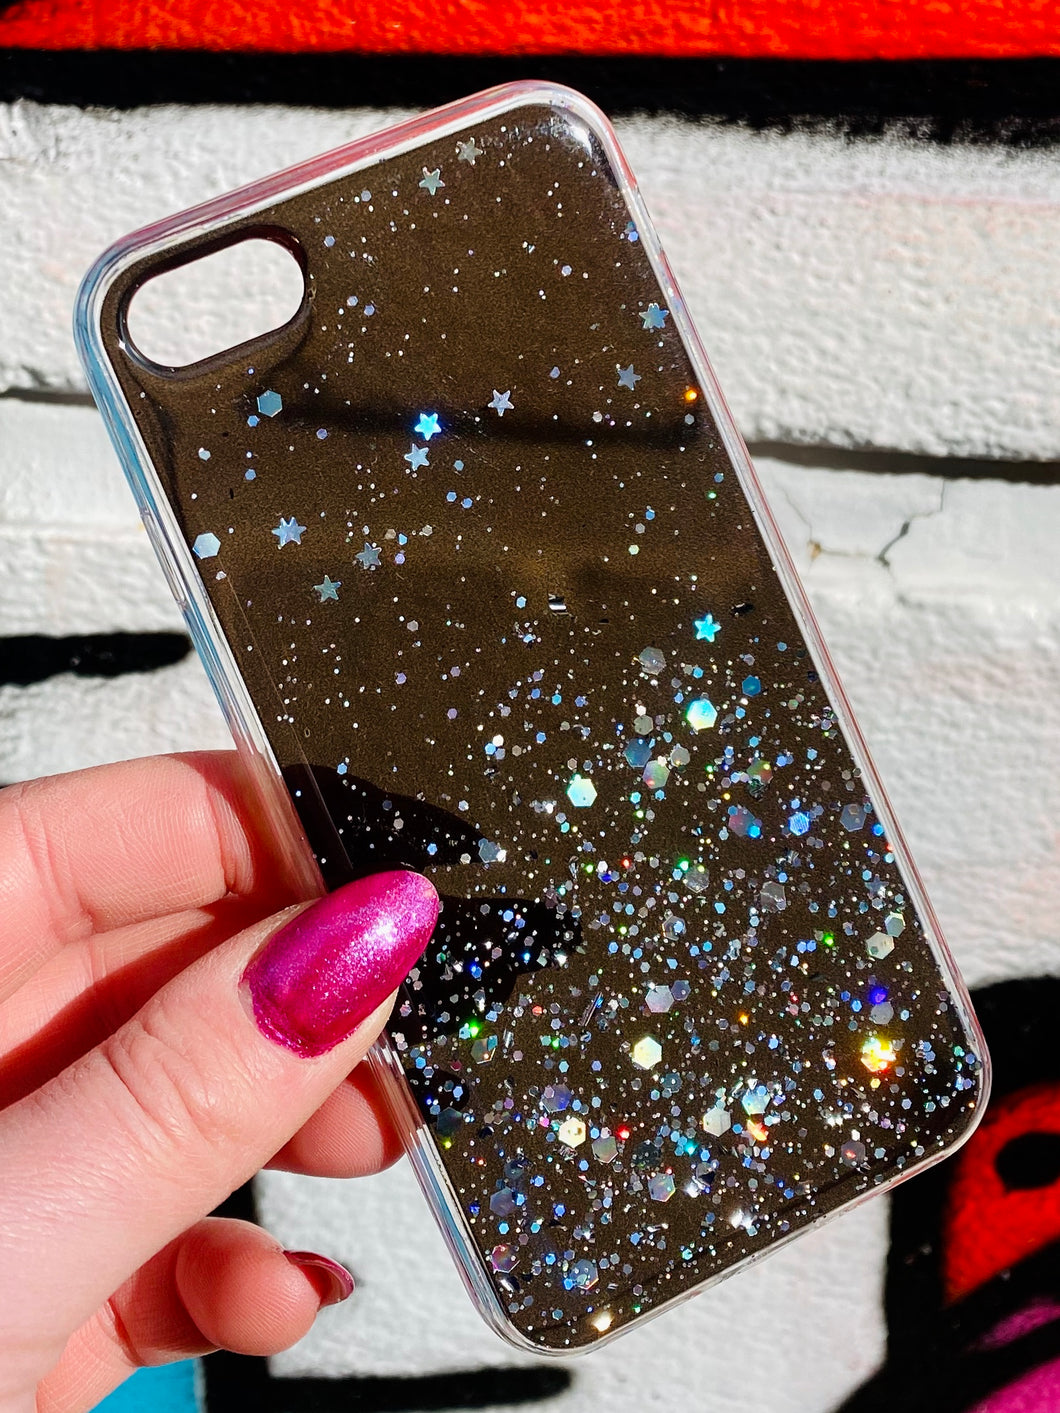 ONIMOS iPhone Case in Black Transparent with Sparkling Glitter